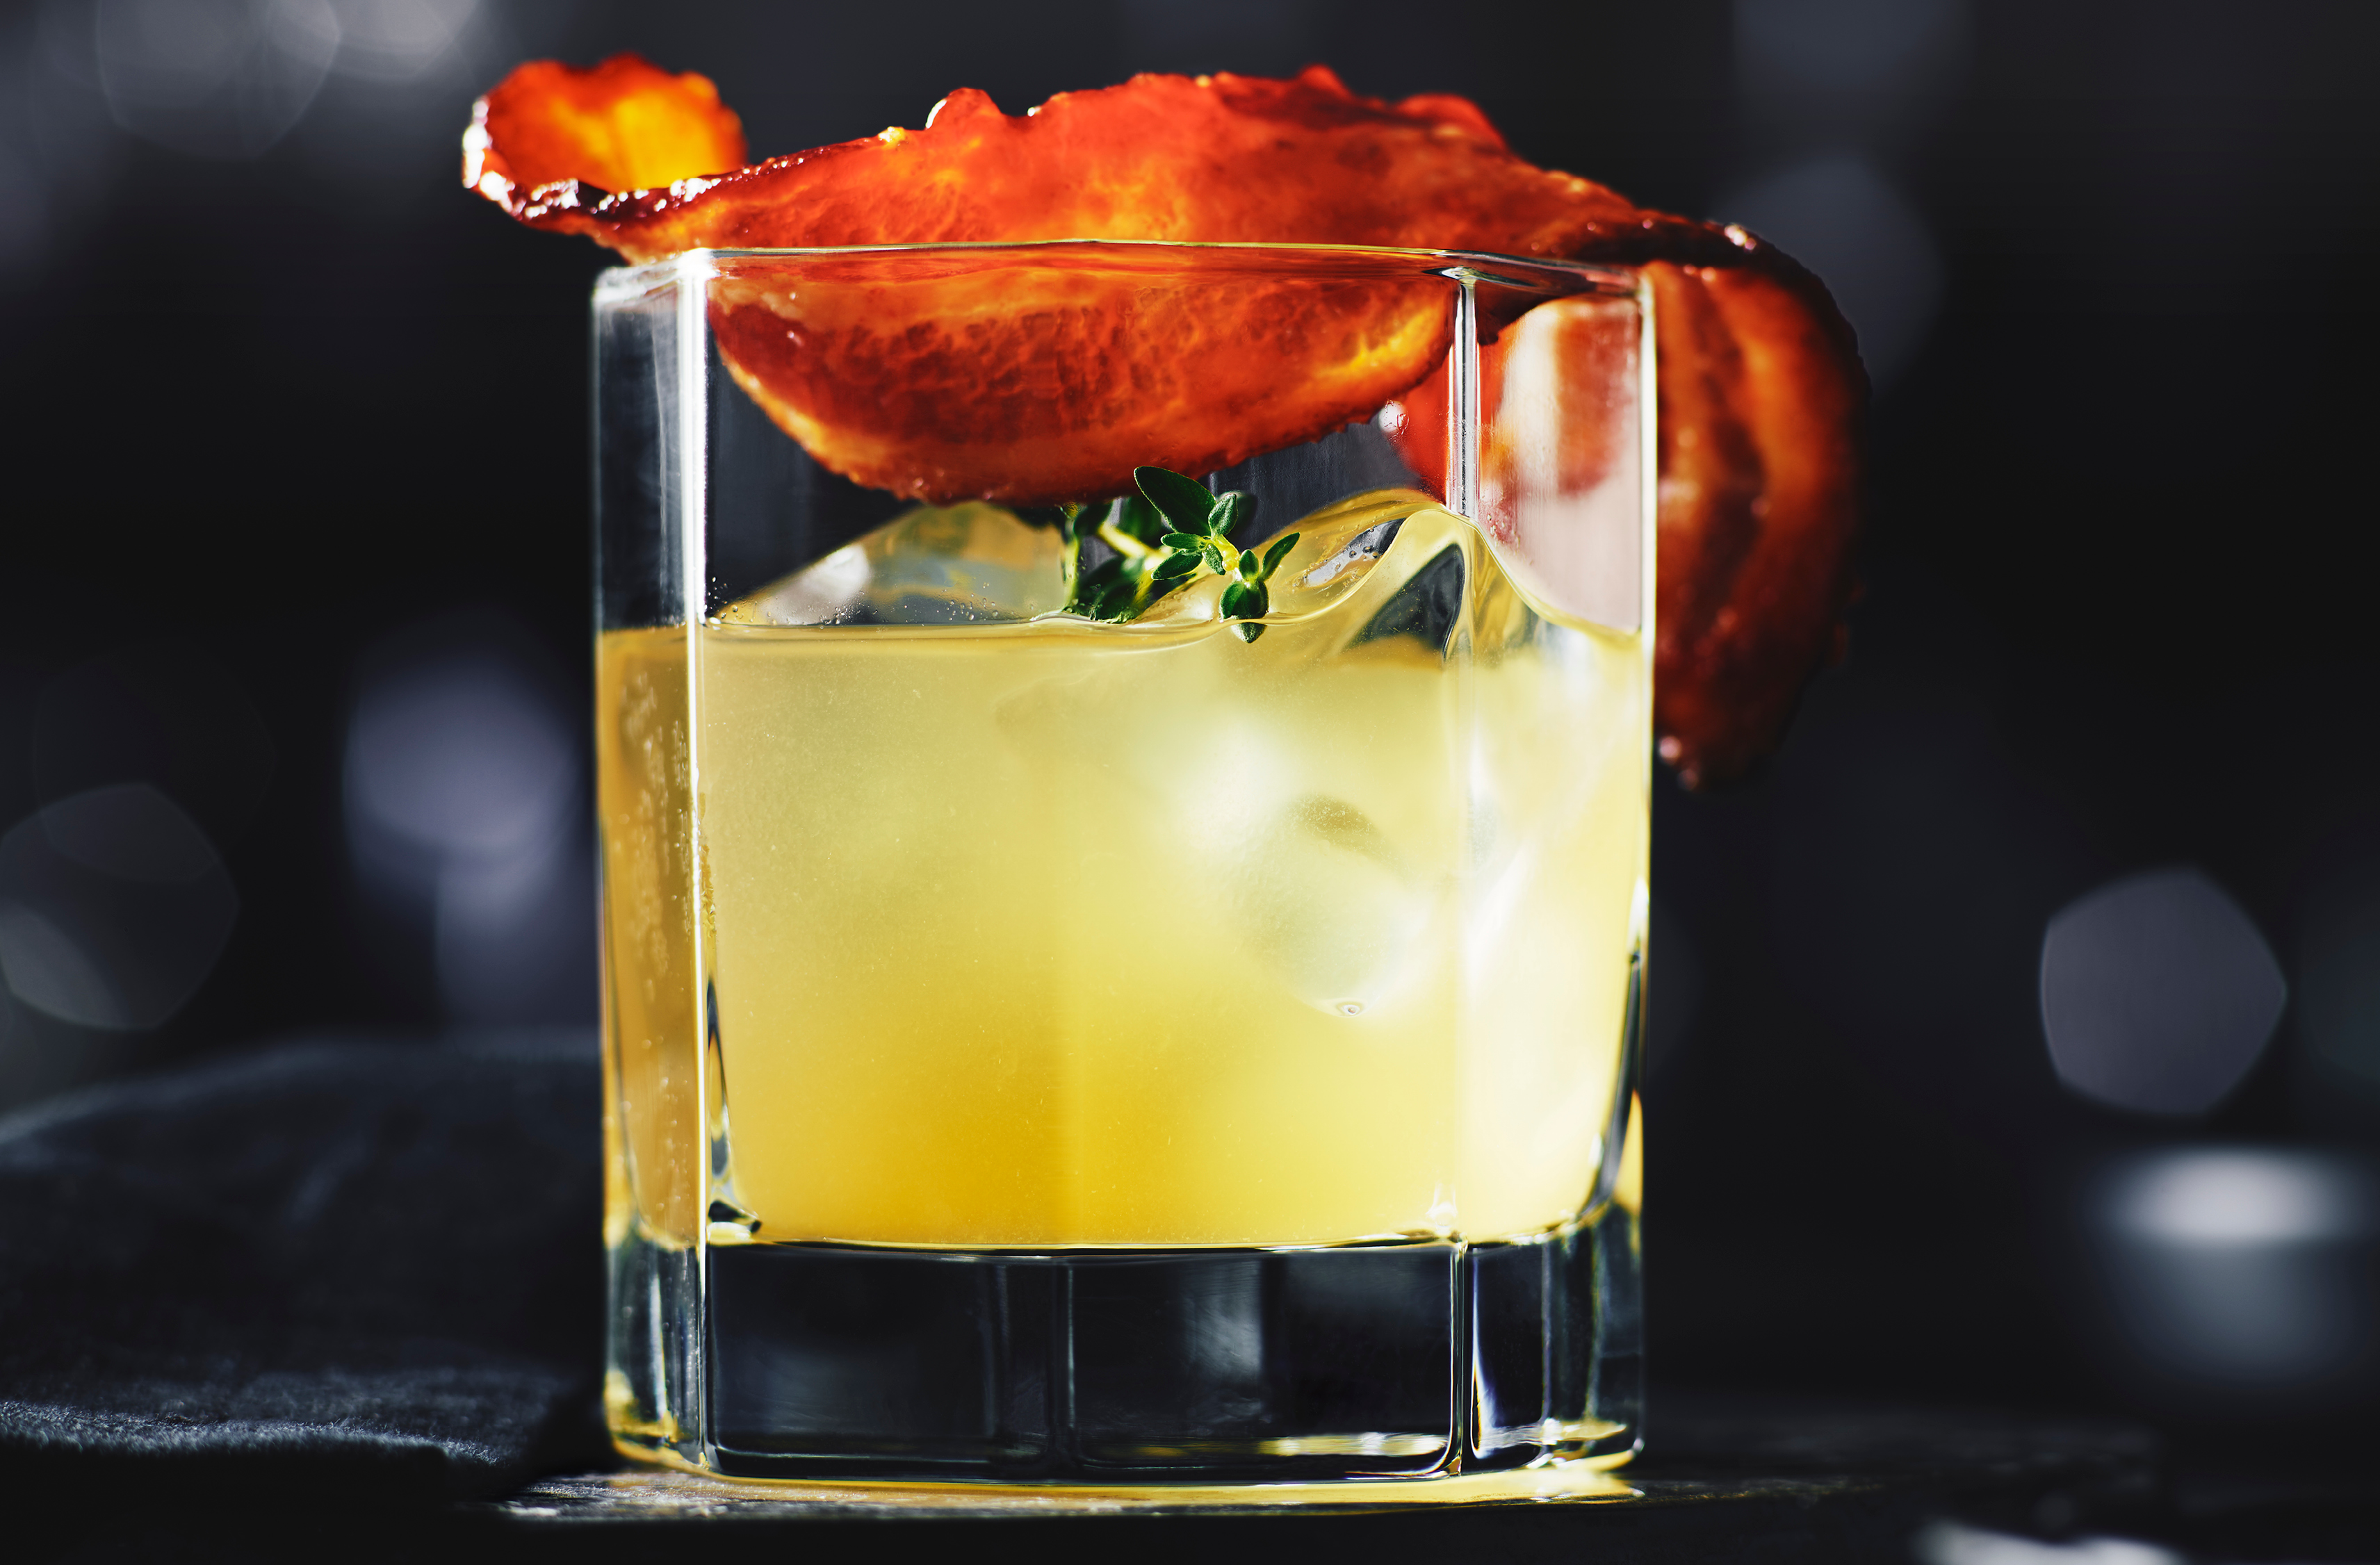 A glass of white peach bourbon shrub garnished with candied bacon